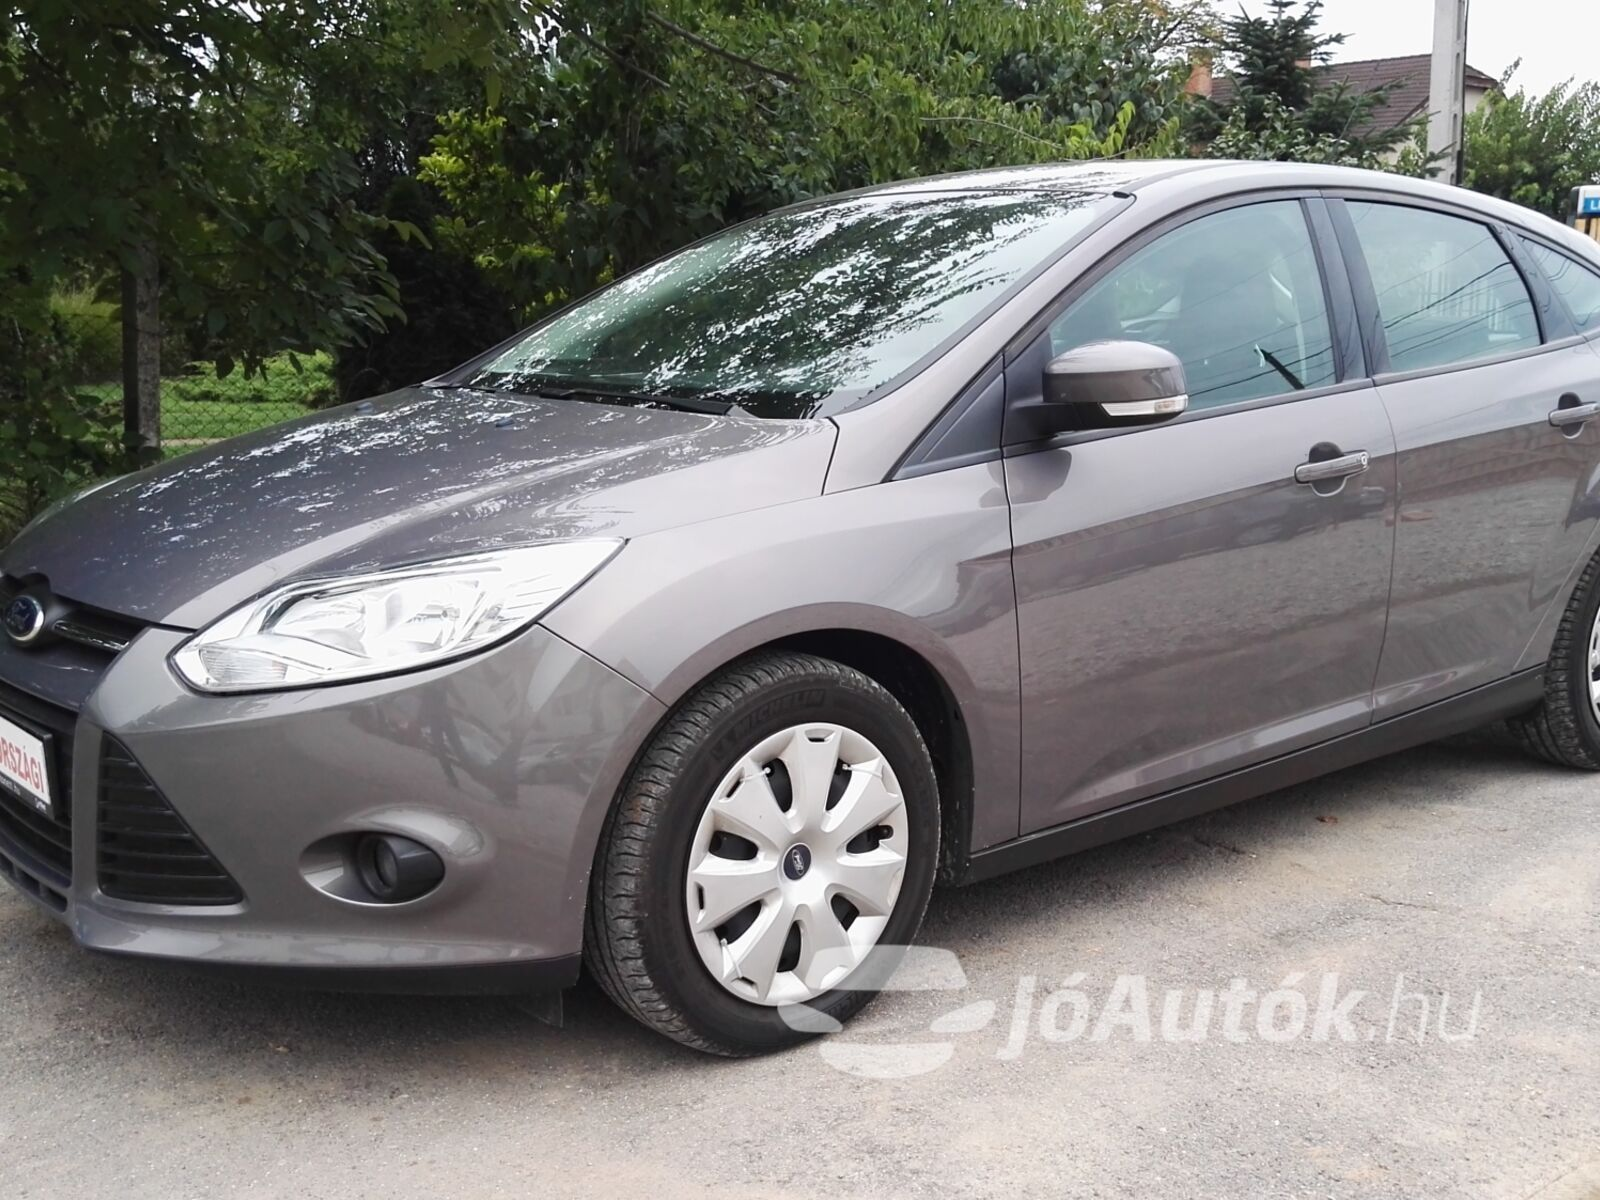 FORD Focus 1.6 TDCi Trend Plus - bal eleje